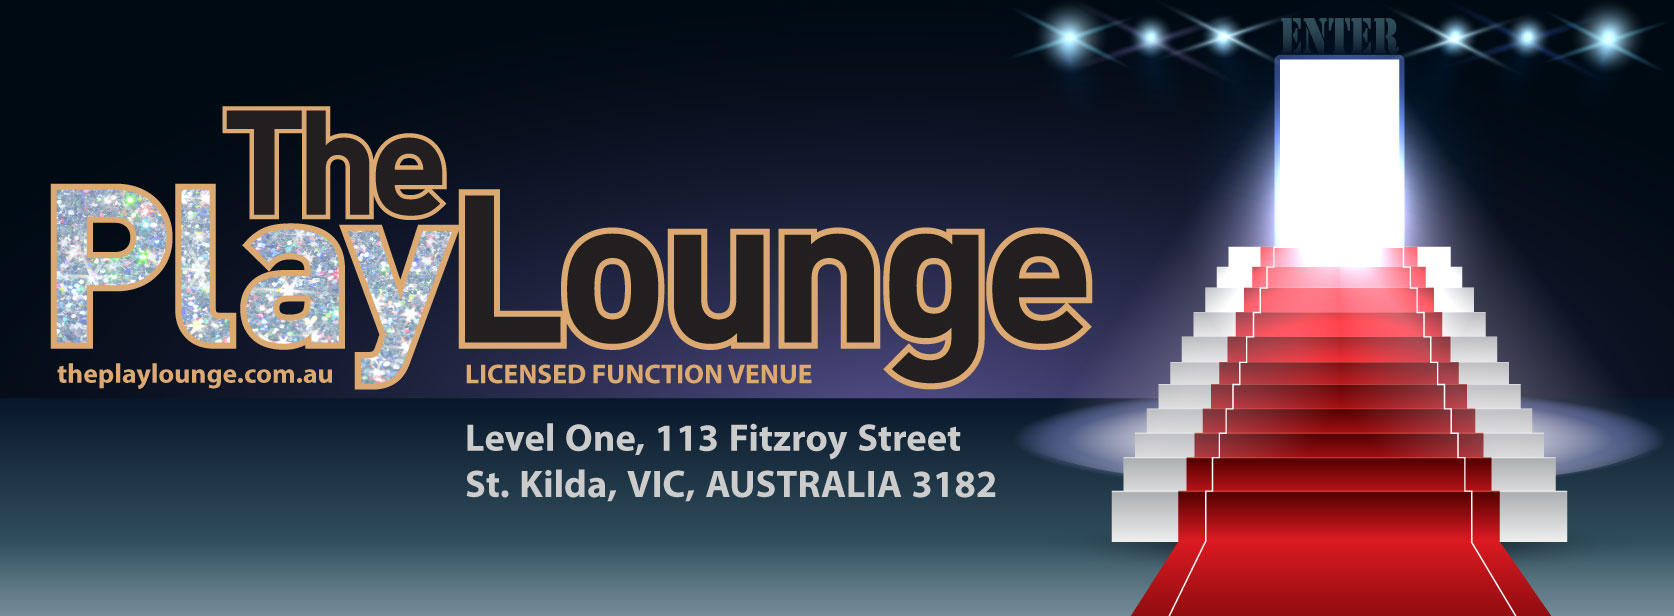 The PlayLounge St Kilda - Exclusive Private Function Venue for Hens Nights, Bucks Party or Any Private Party or Event